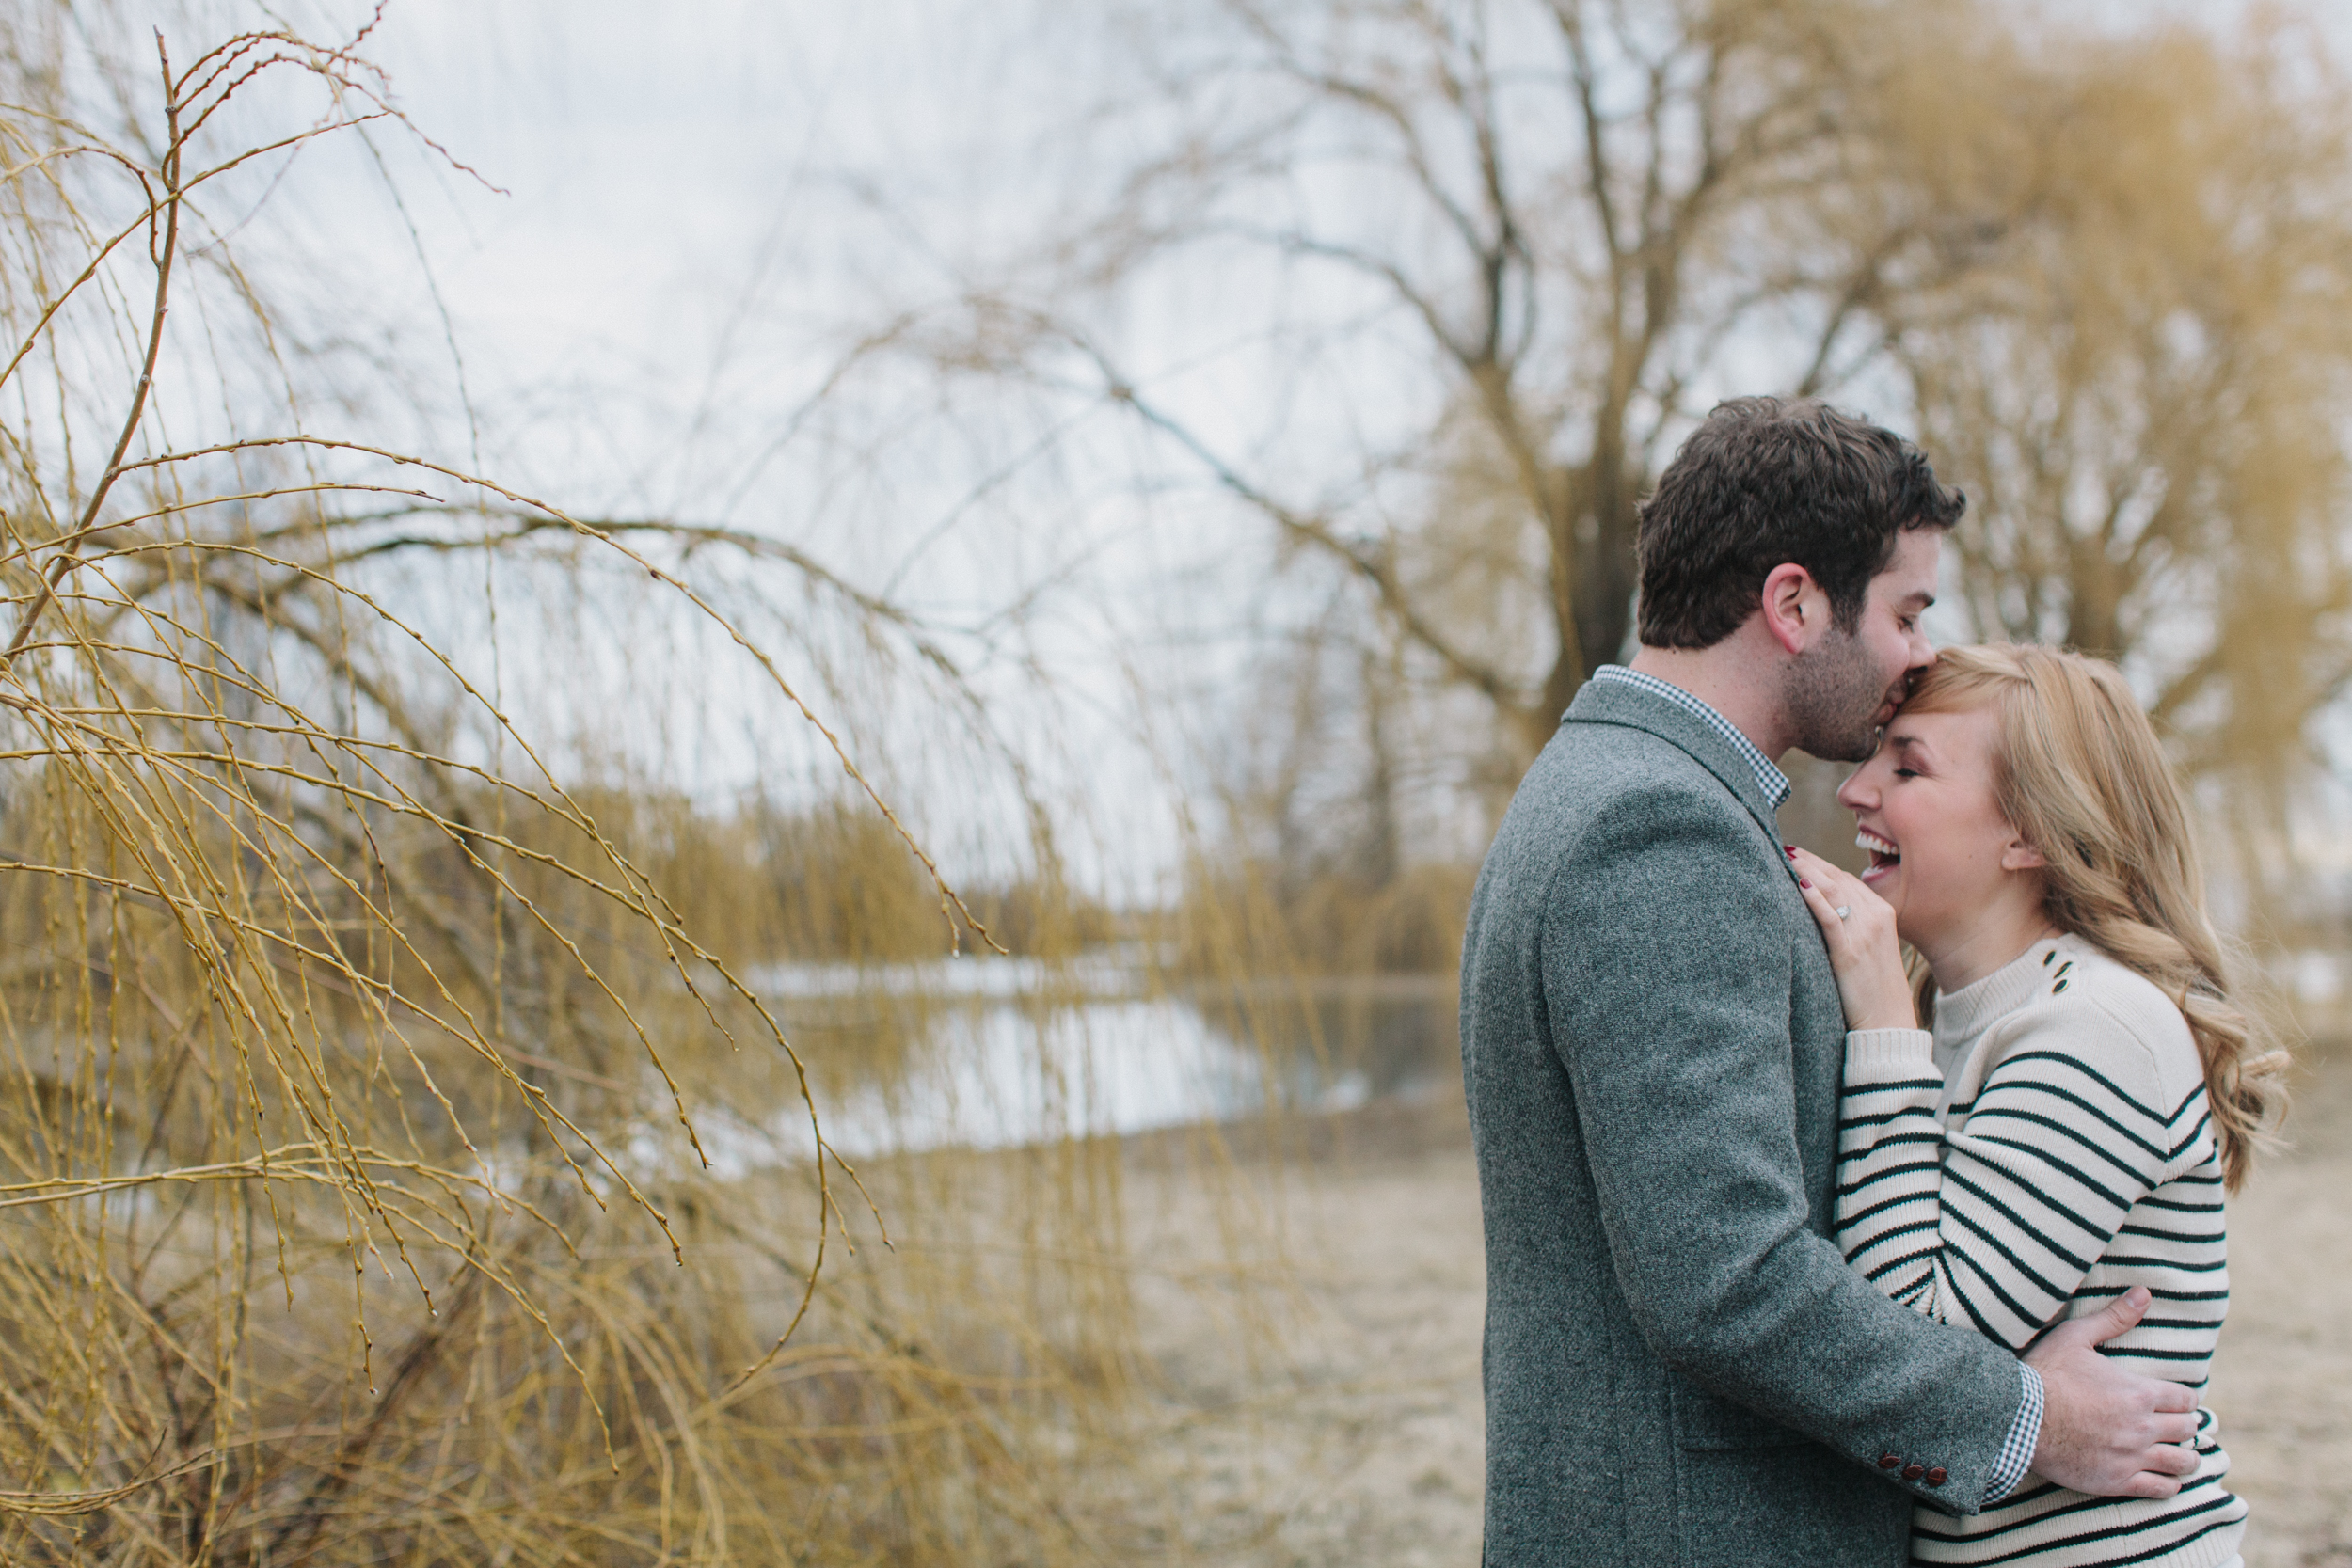 Detroit Michigan Belle Isle Engagement photos Lifestyle Wedding Photographer Mae Stier Candid Photography-022.jpg